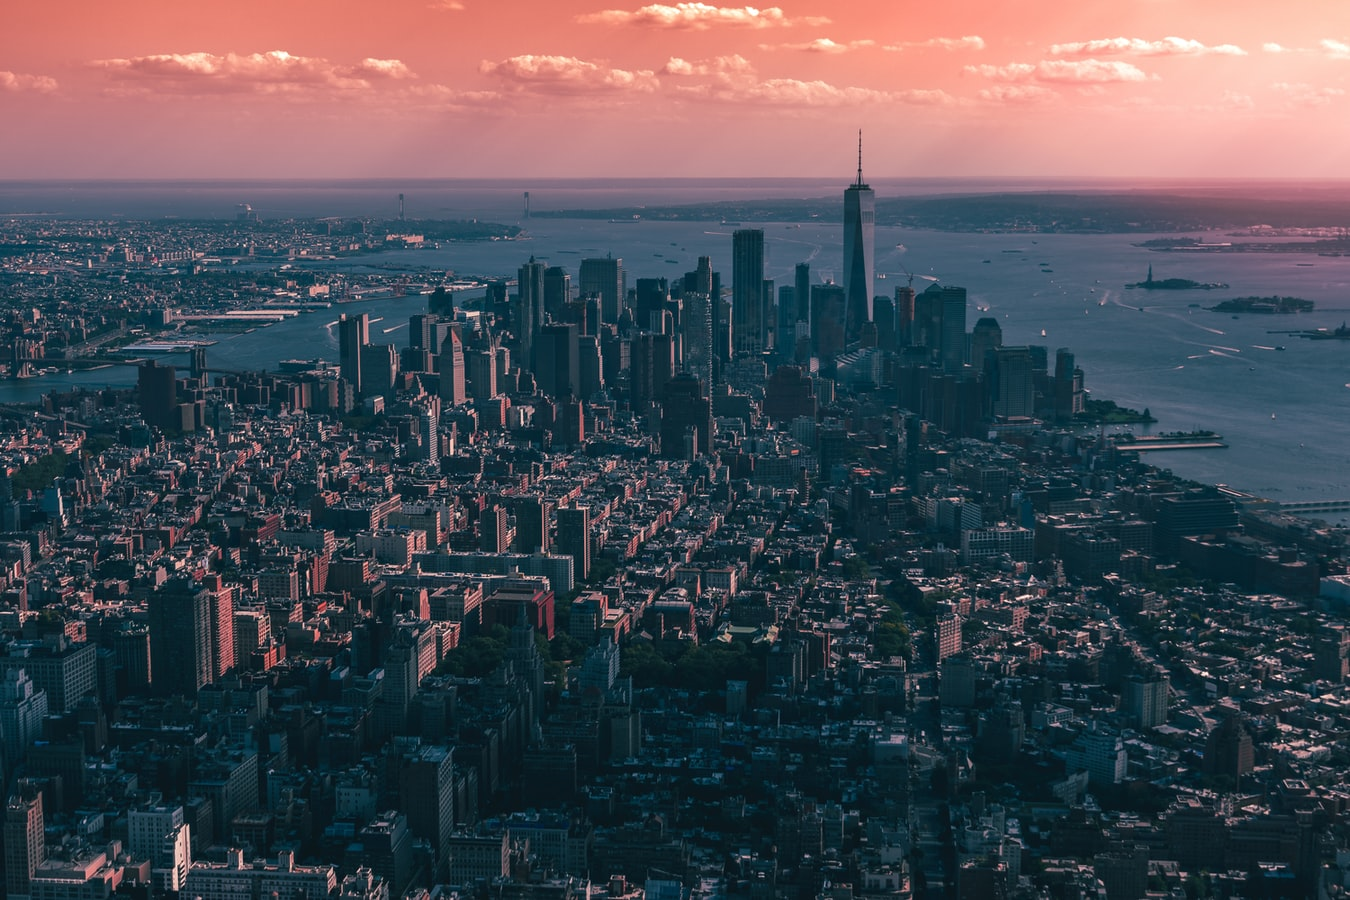 New York City skyline in the glow of sunset.